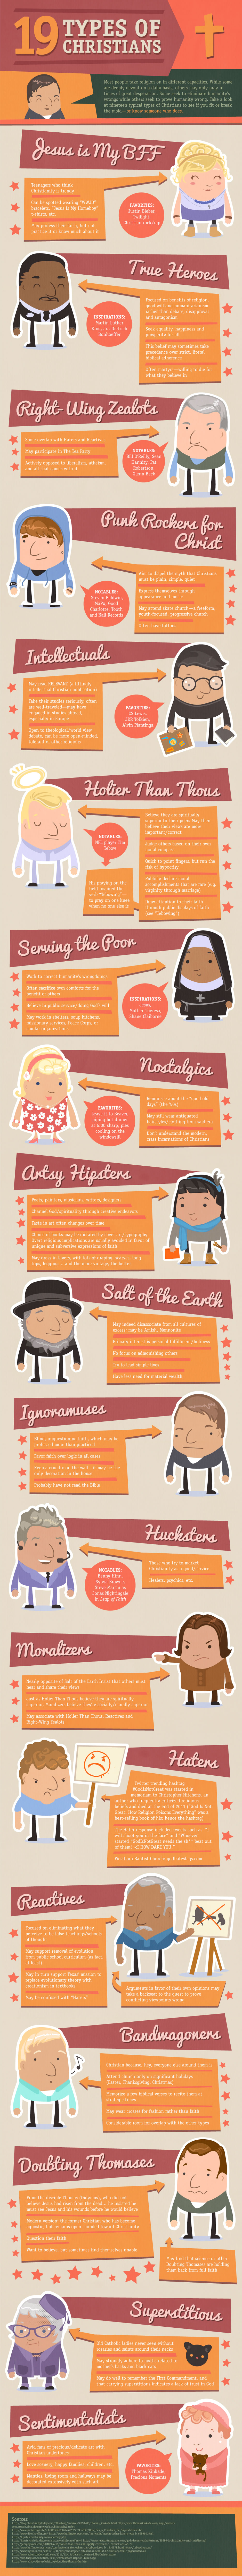 19 Types of Christians